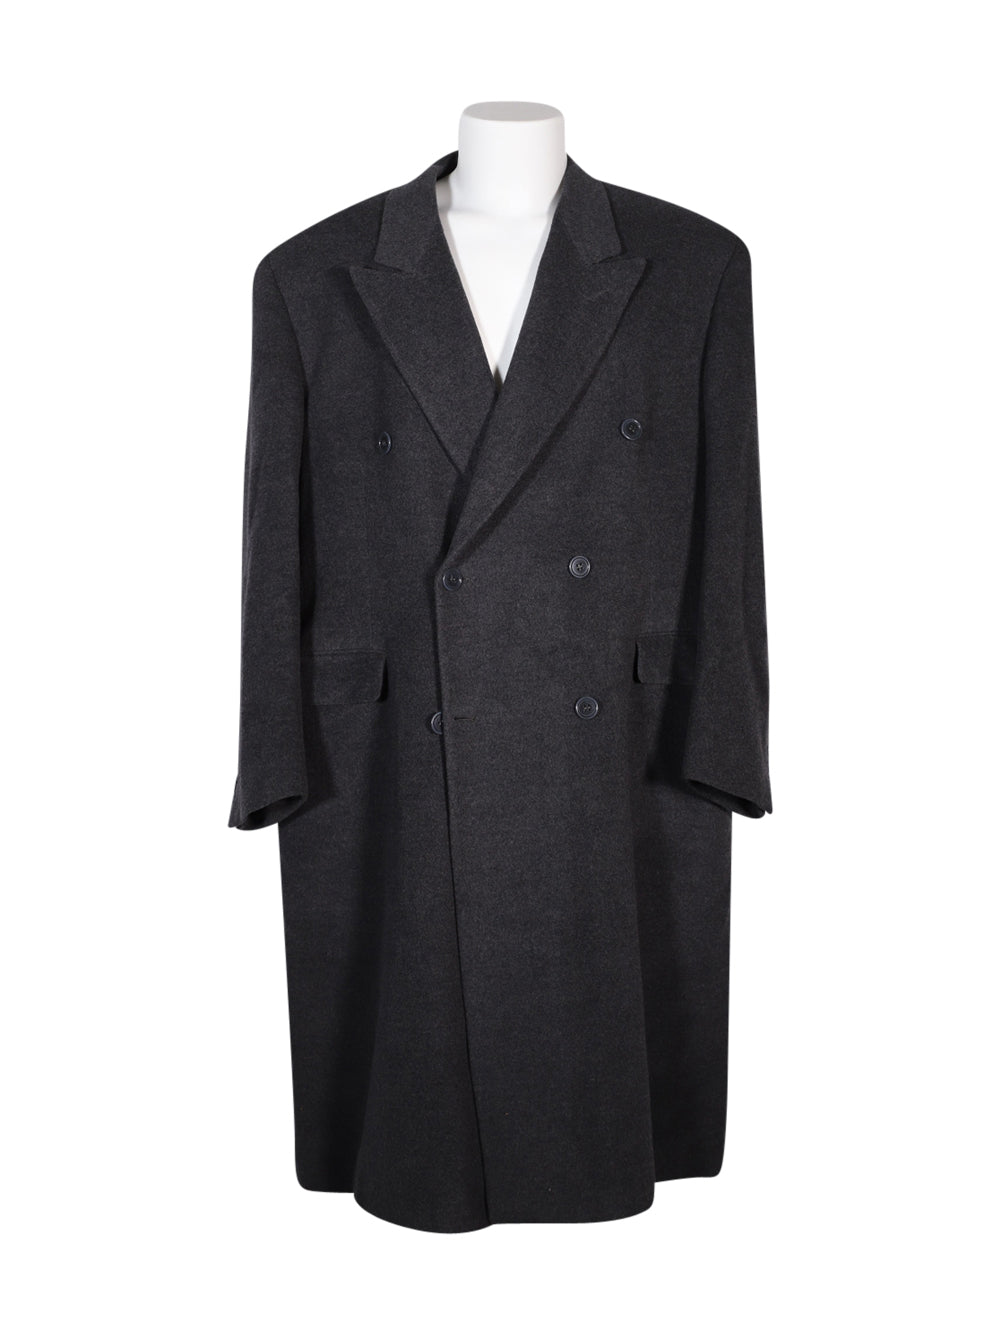 Front photo of Preloved callaghan's Grey Man's coat - size 46/XXXL